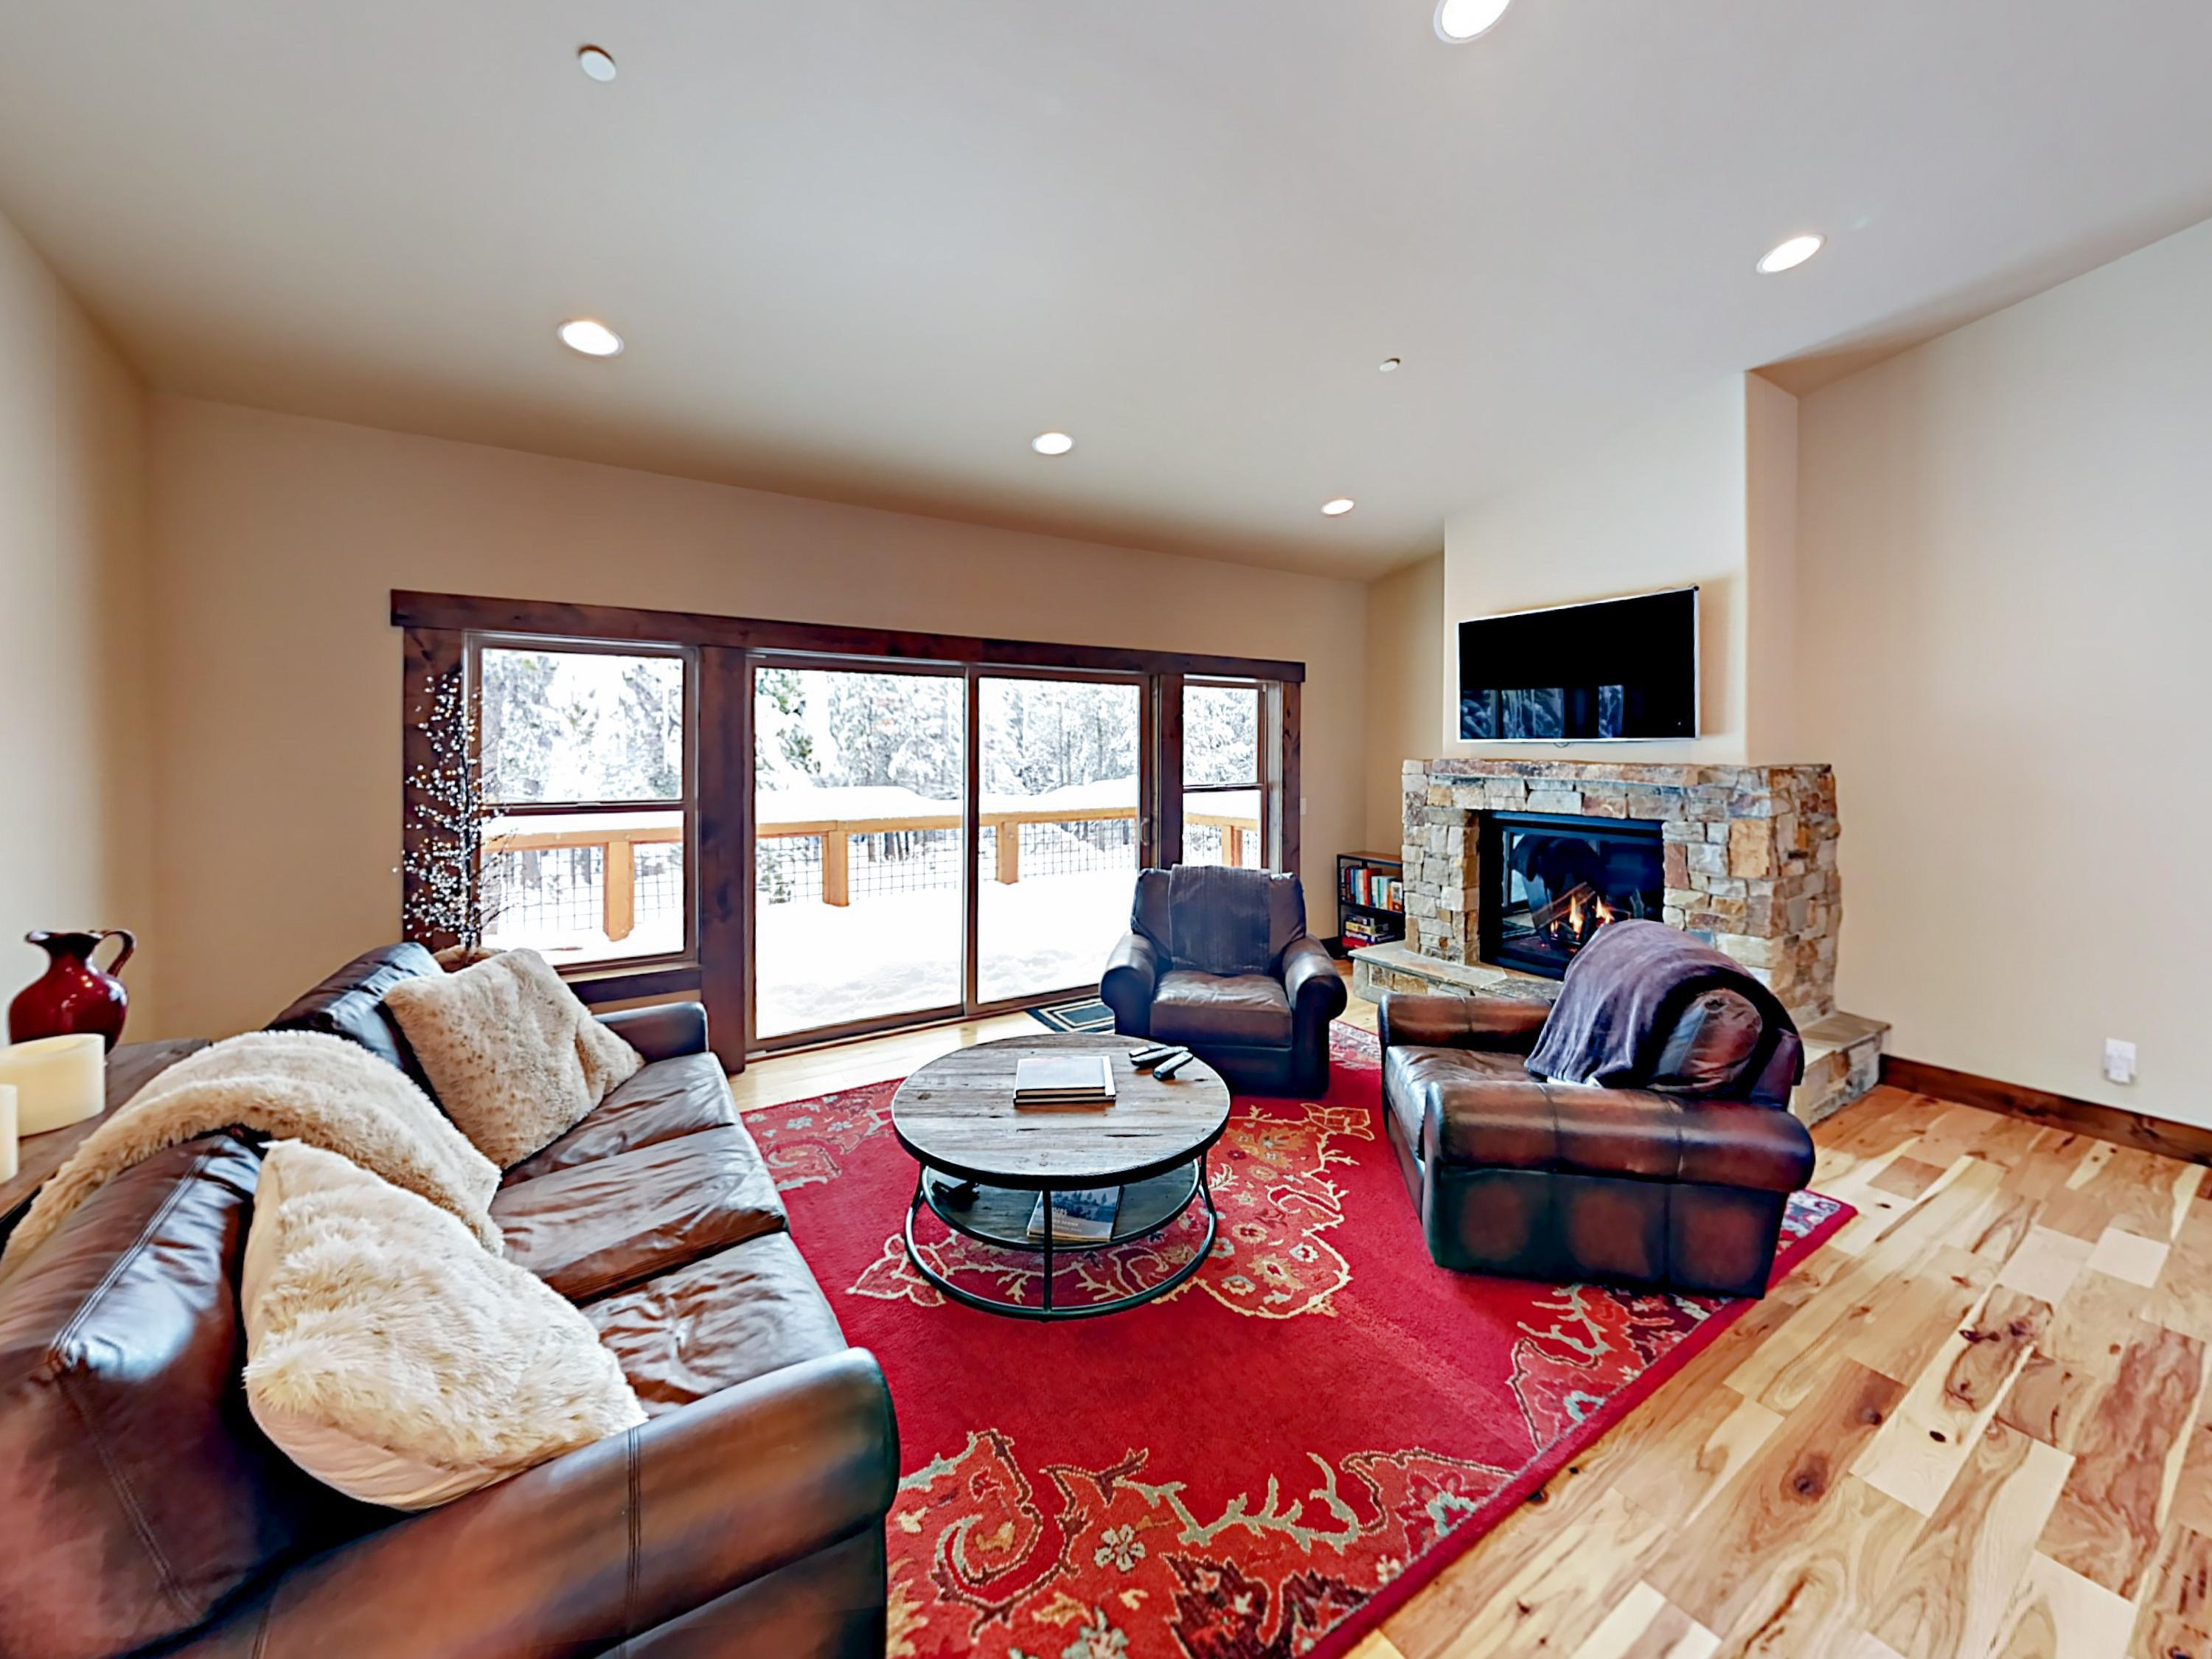 Welcome to Truckee! This newly built home is professionally managed by TurnKey Vacation Rentals.